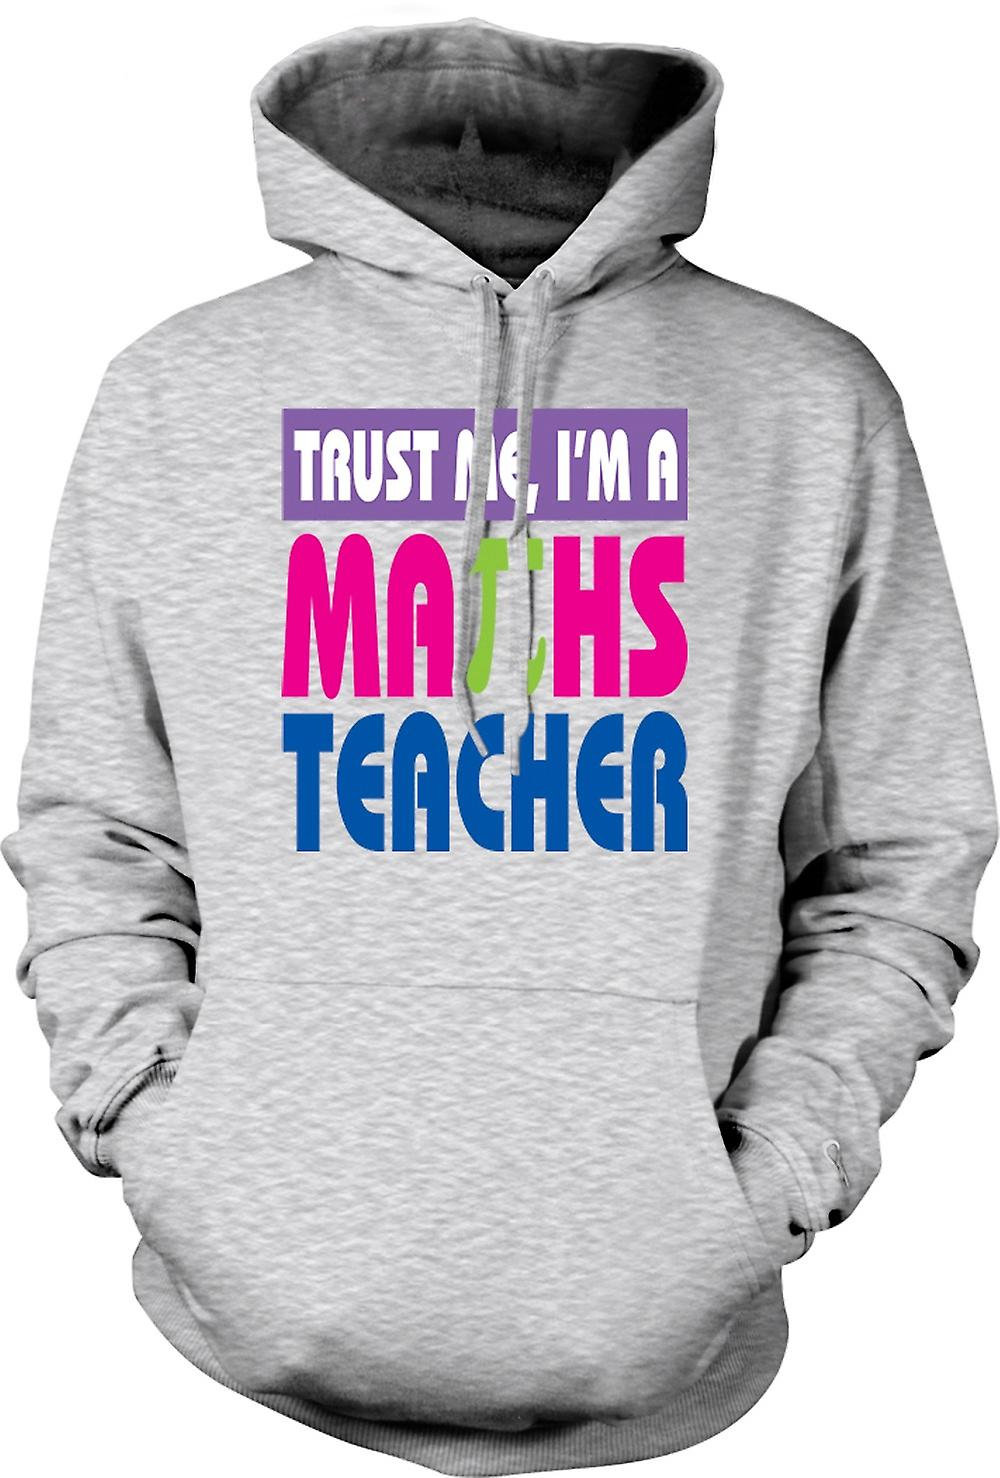 Mens Hoodie - Trust Me I'm A Maths Teacher - Funny